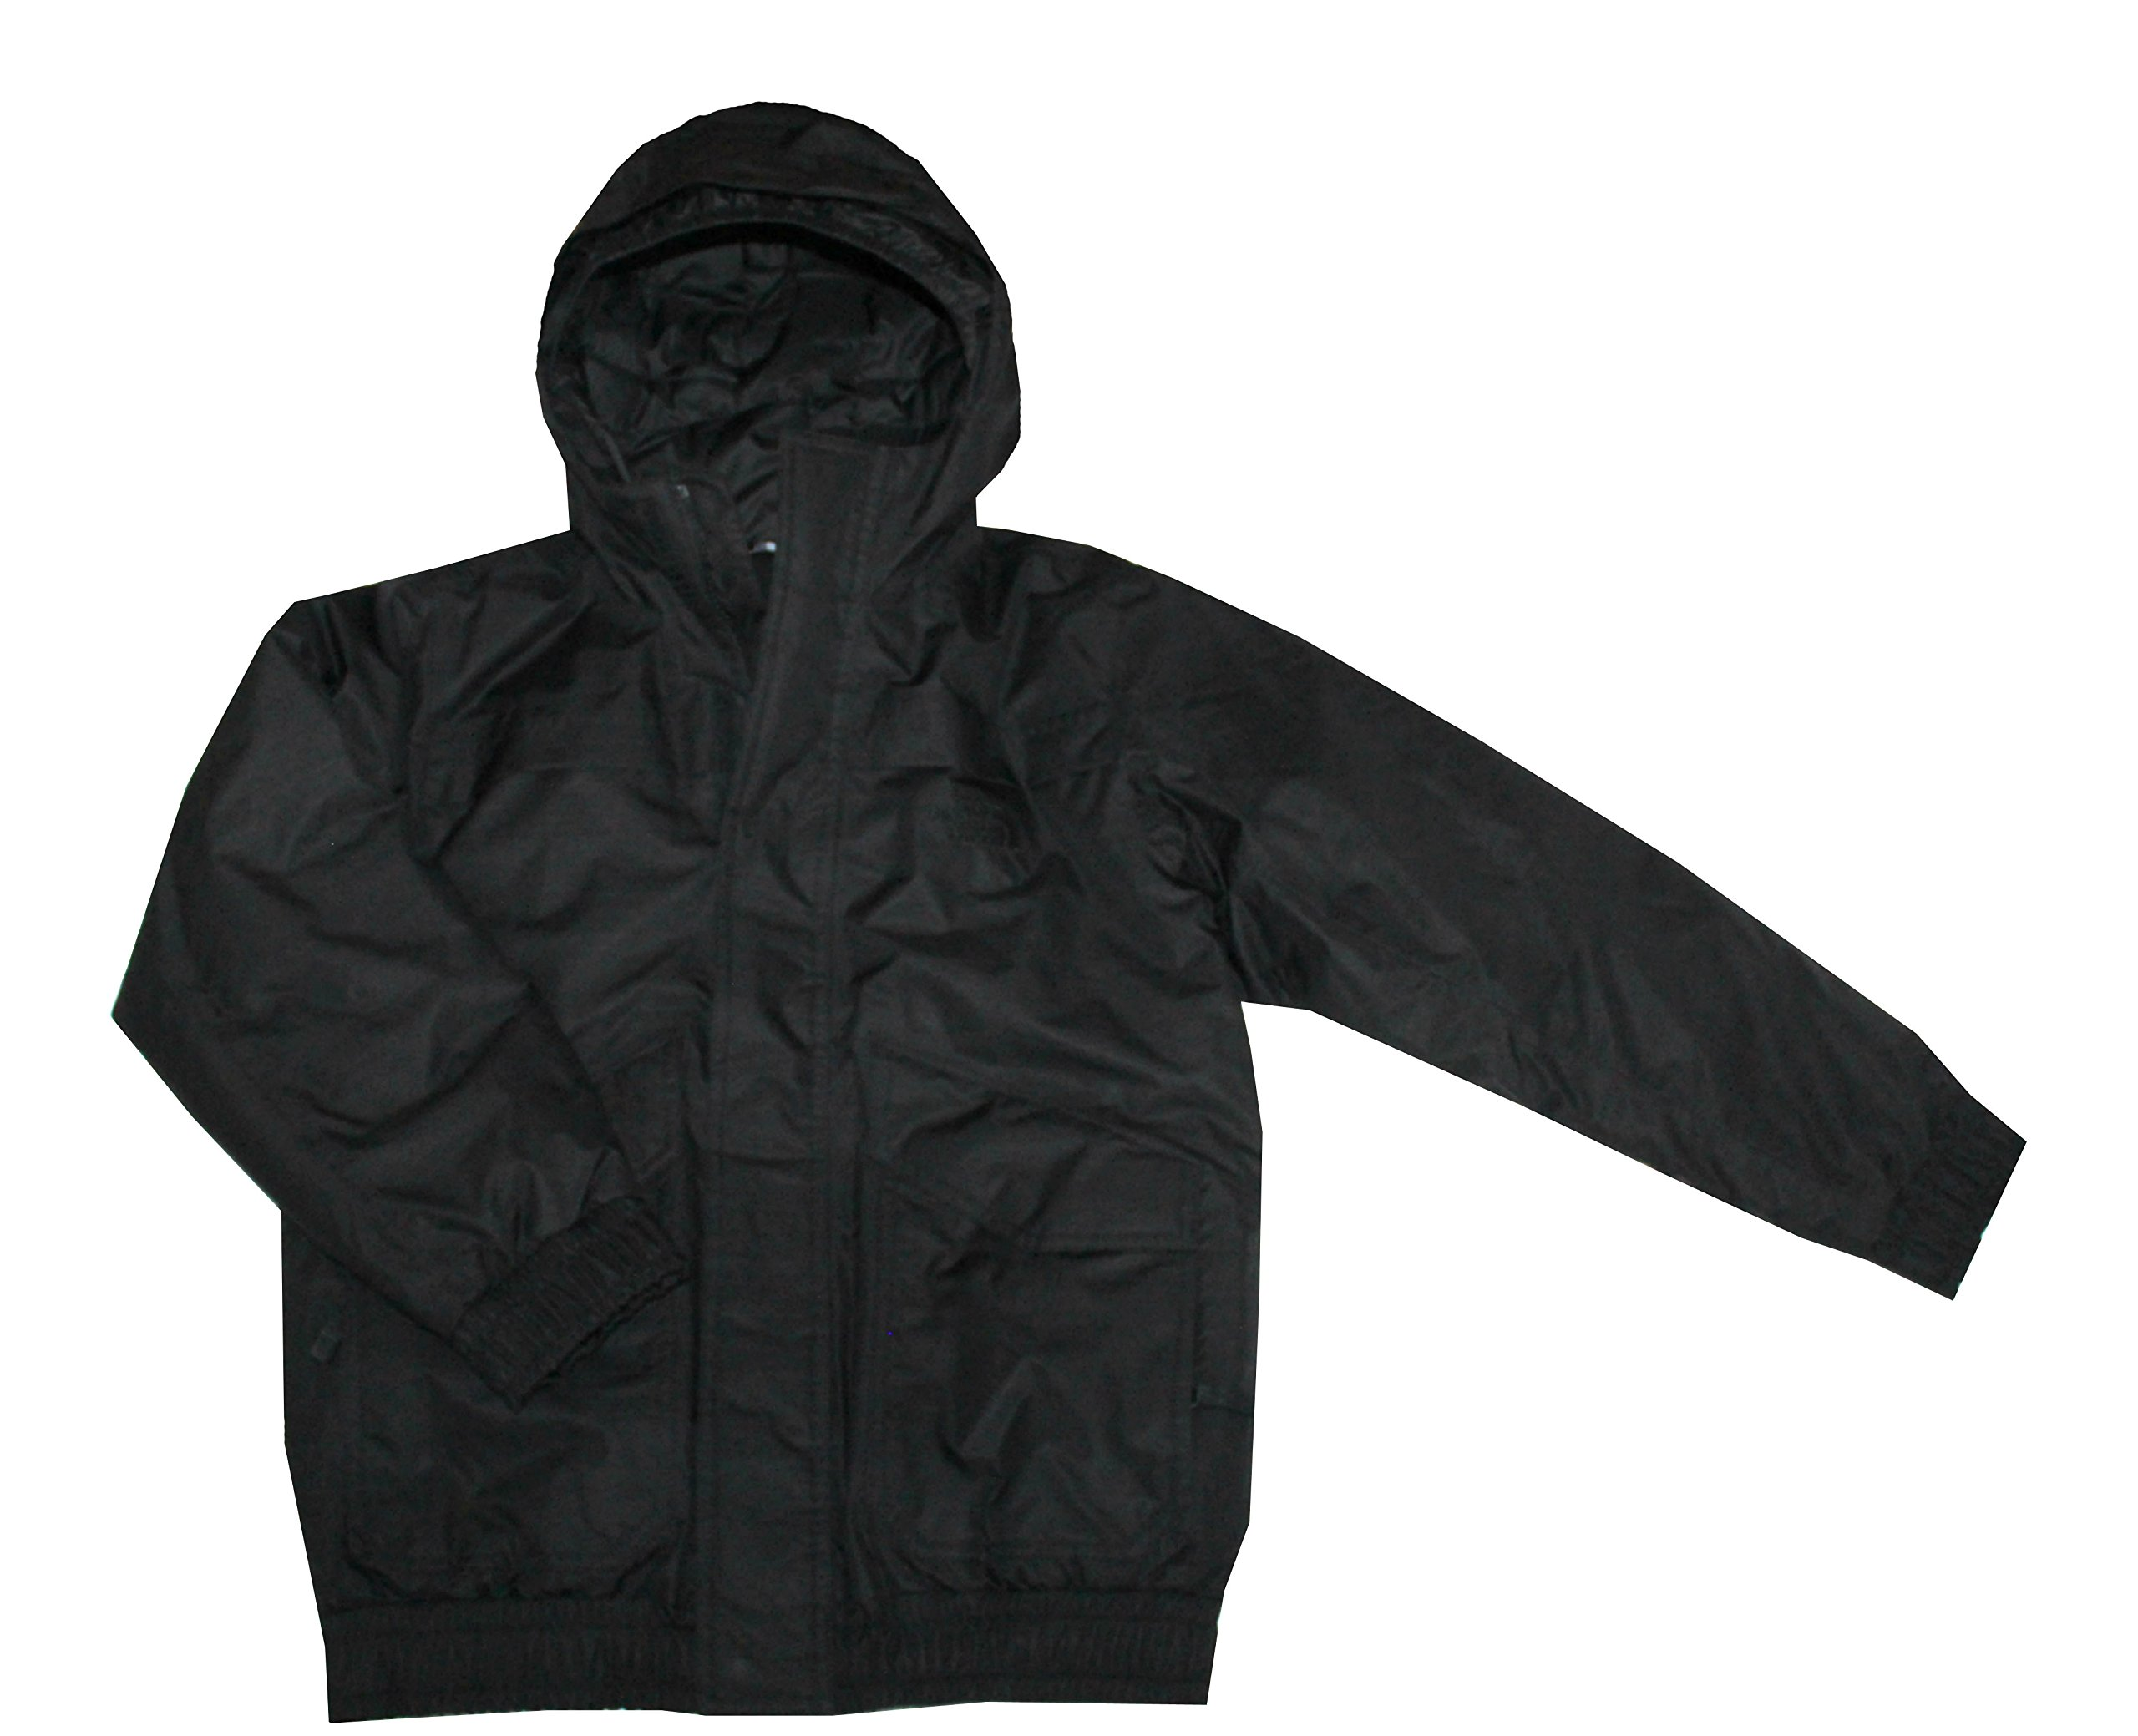 THE NORTH FACE YOUTH BOYS MILO DOWN INSULATED WINTER JACKET BLACK (L 14/16) by The North Face